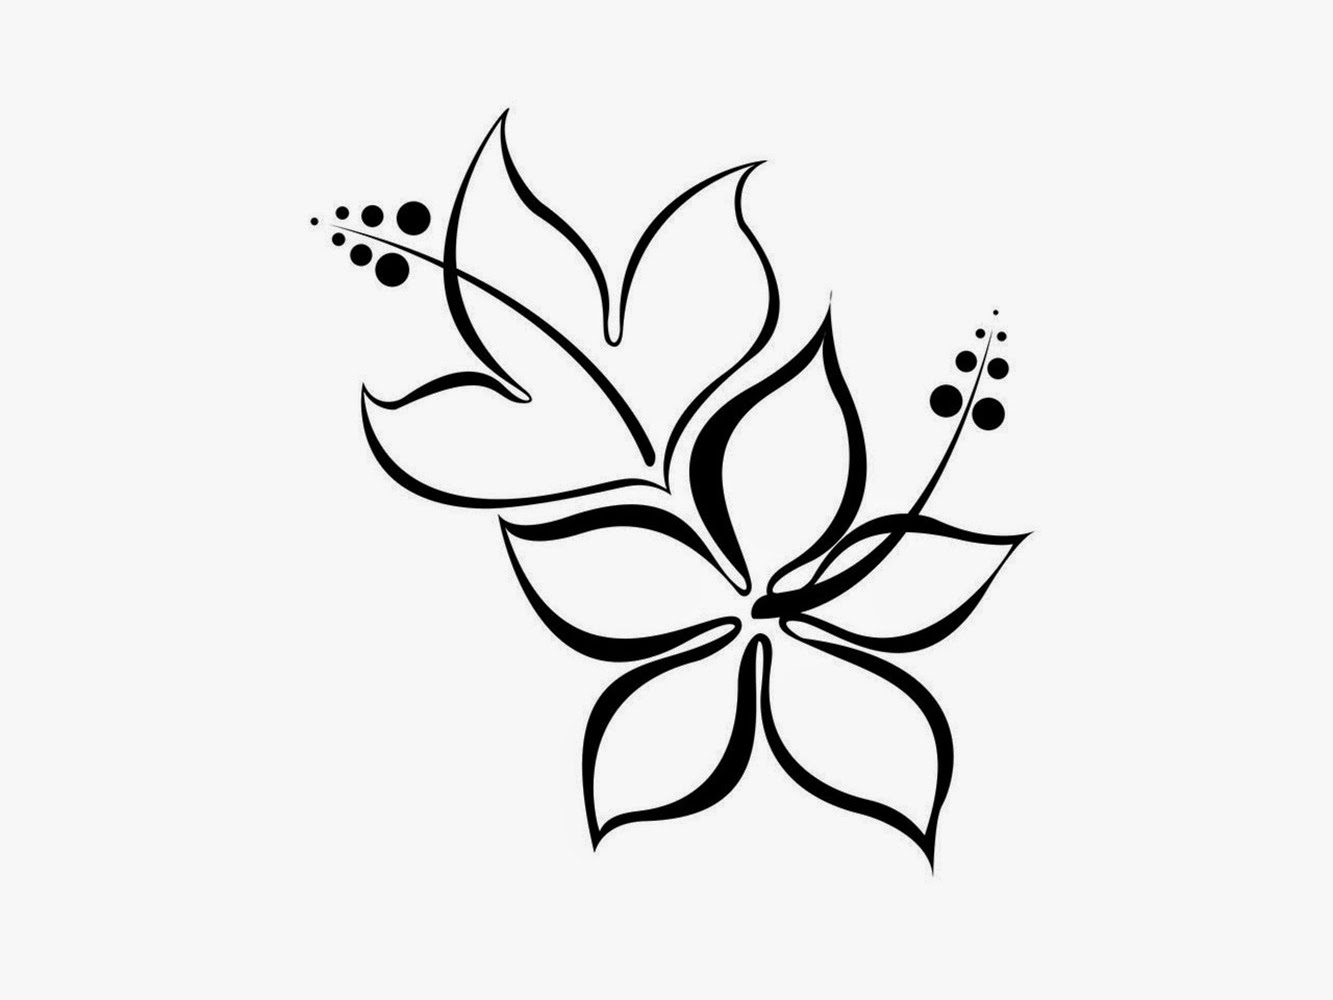 1333x1000 Simple Flower Designs Pencil Drawing Black And White Flower Design